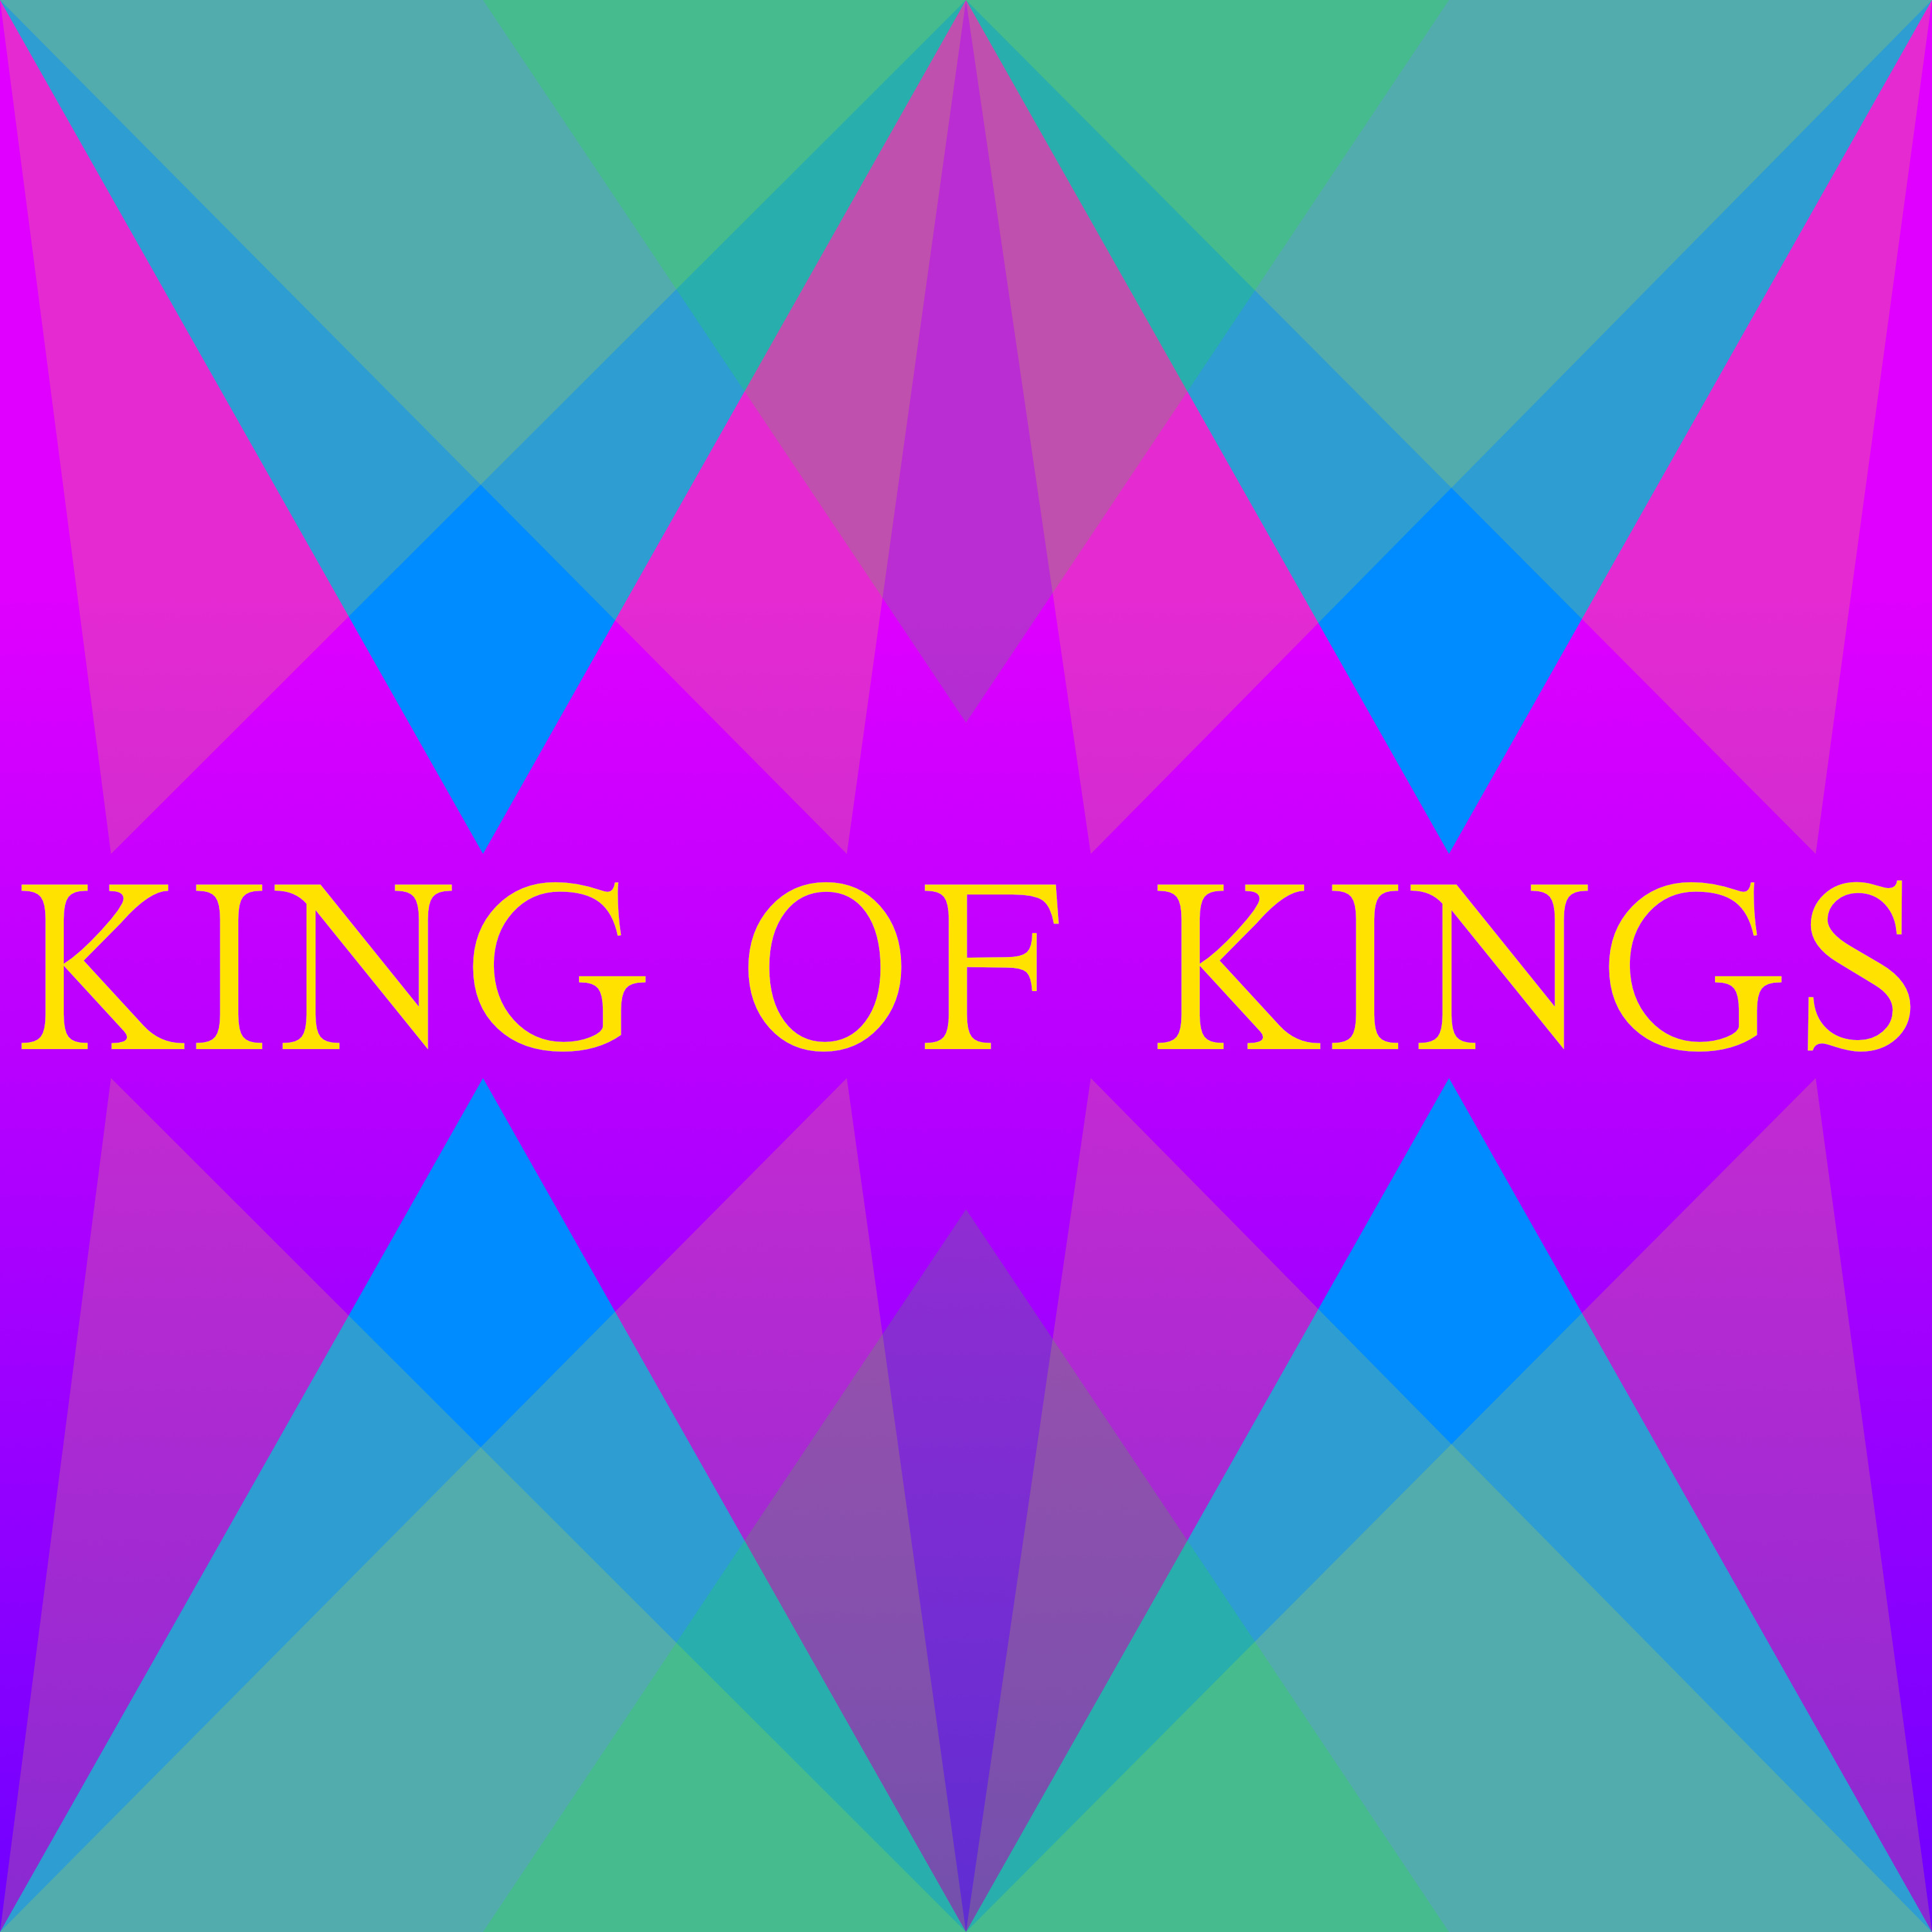 King of Kings Square Graphic